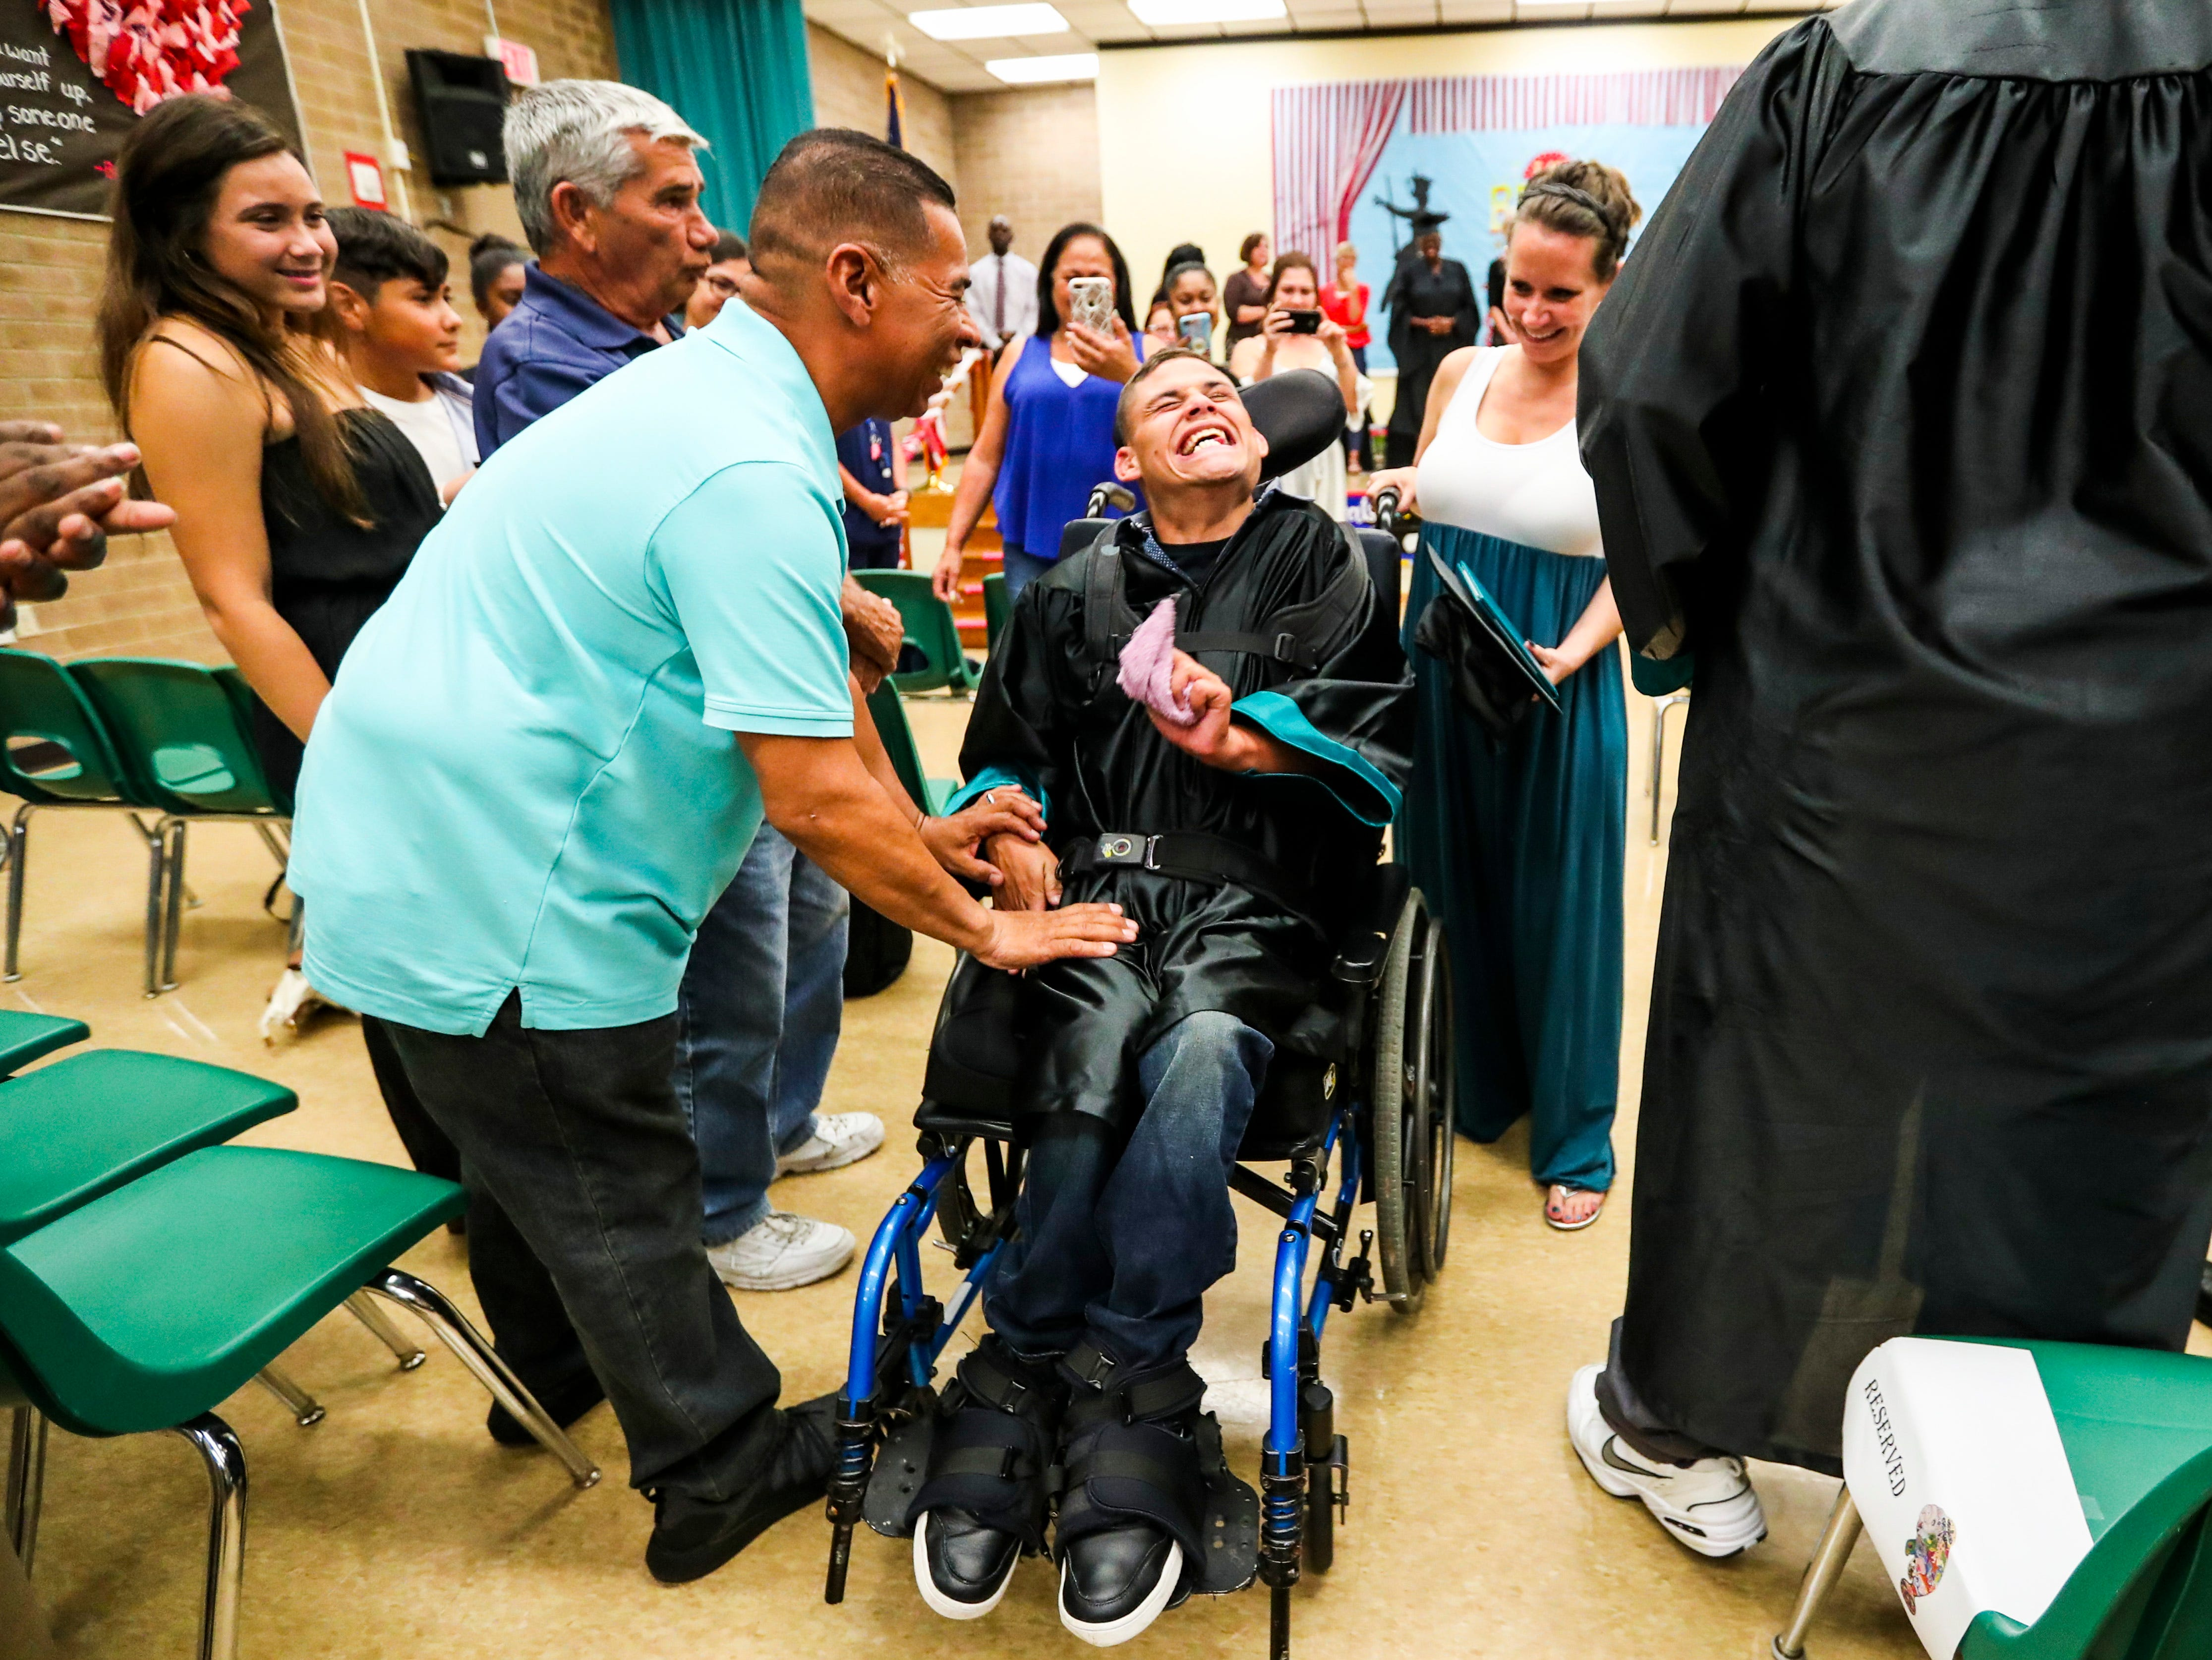 Melvin Reyes reacts to seeing his family as he leaves the ceremony. 13 students at Buckingham Exceptional Student Center graduated during a ceremony in their honor. Family, friends, and staff were there to honor the graduates.